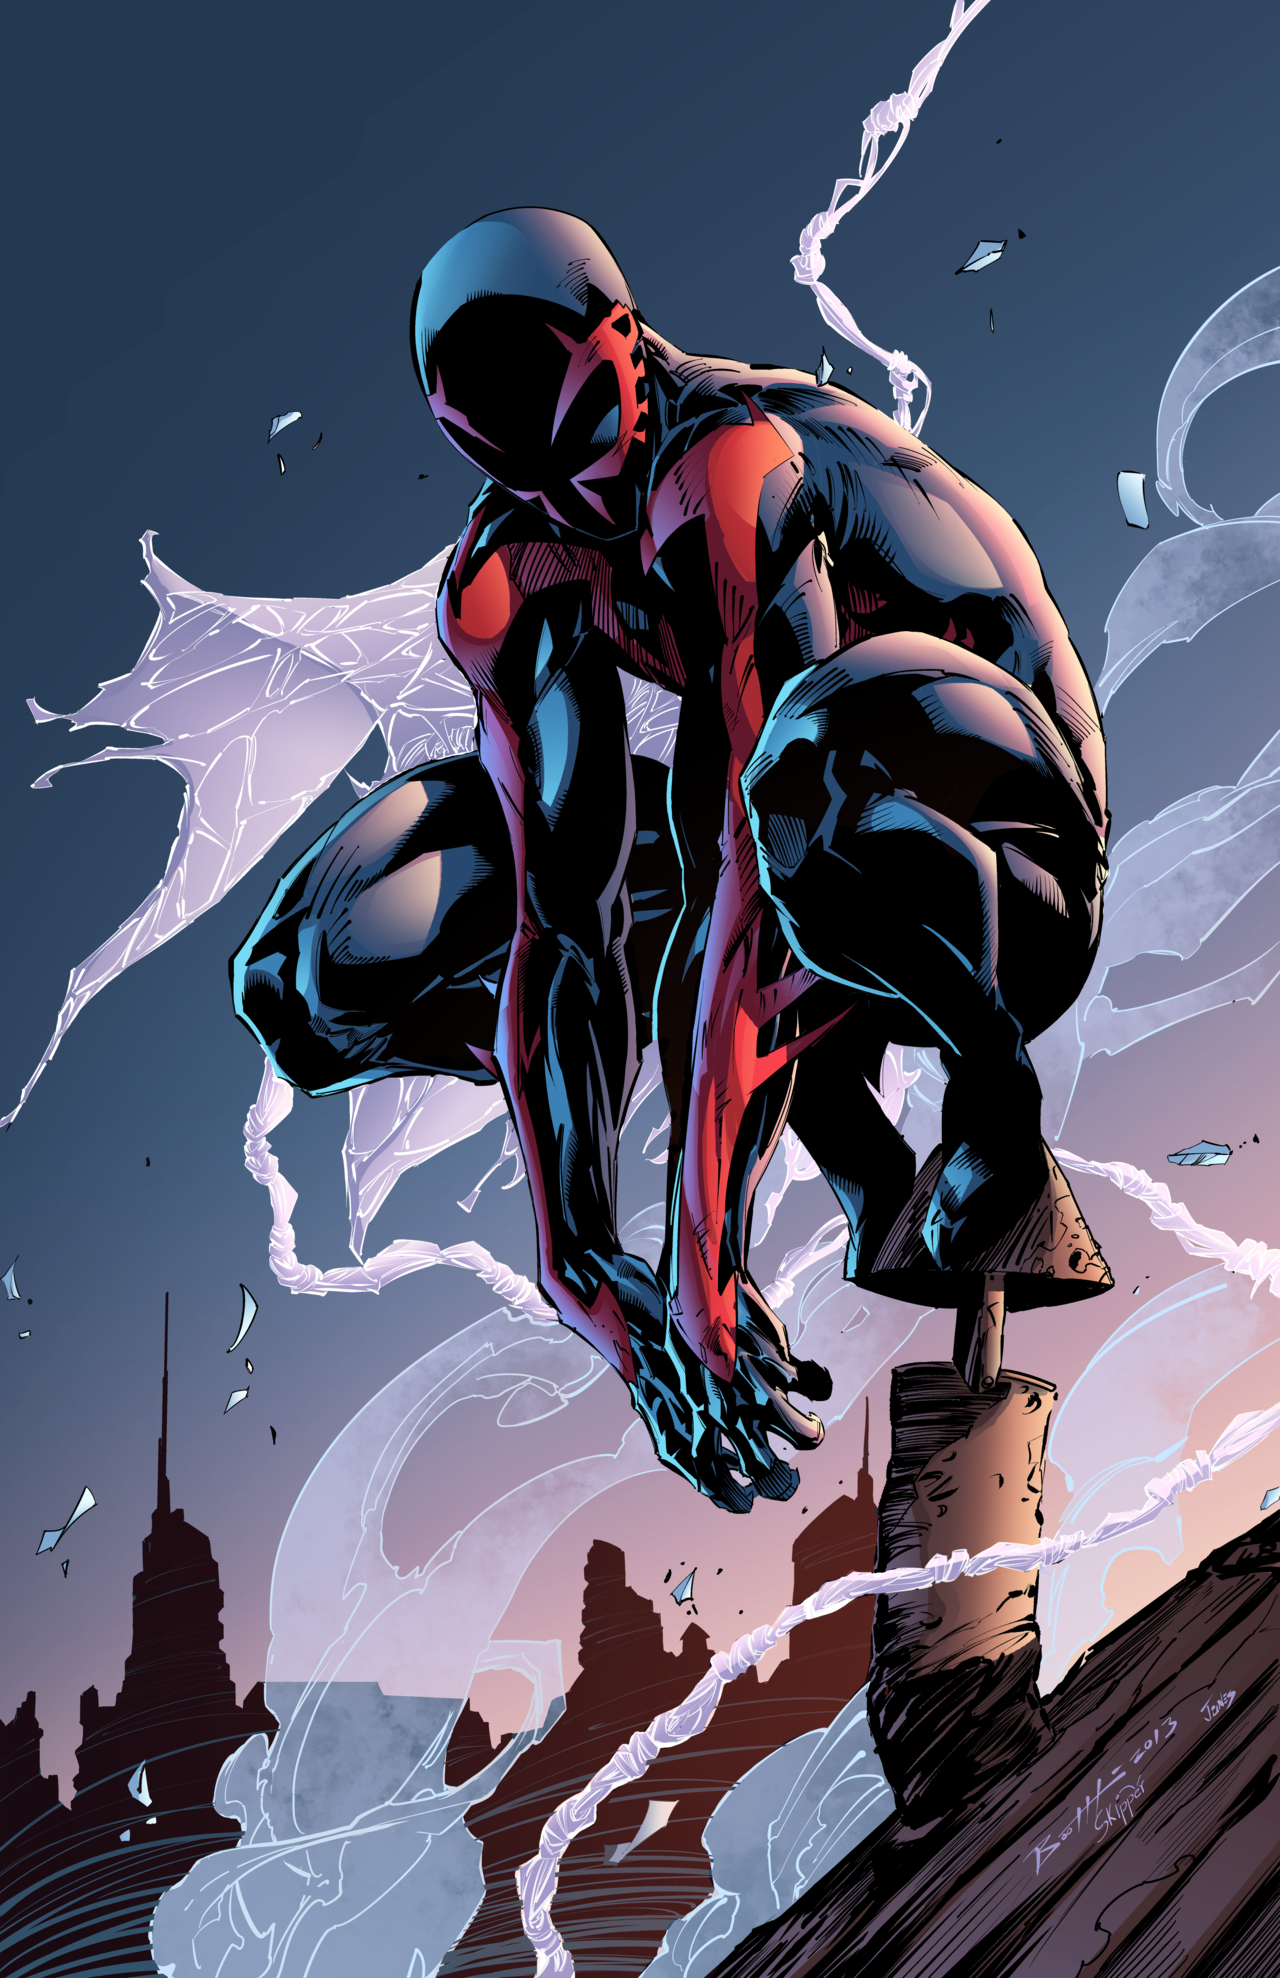 spiderman comic iphone wallpaper, spiderman 2099 iphone wallpaper, ultimate spiderman coloring pages, spiderman logo iphone wallpaper, black spiderman iphone wallpaper, spiderman iphone 4s wallpaper, ultimate spiderman iphone wallpaper